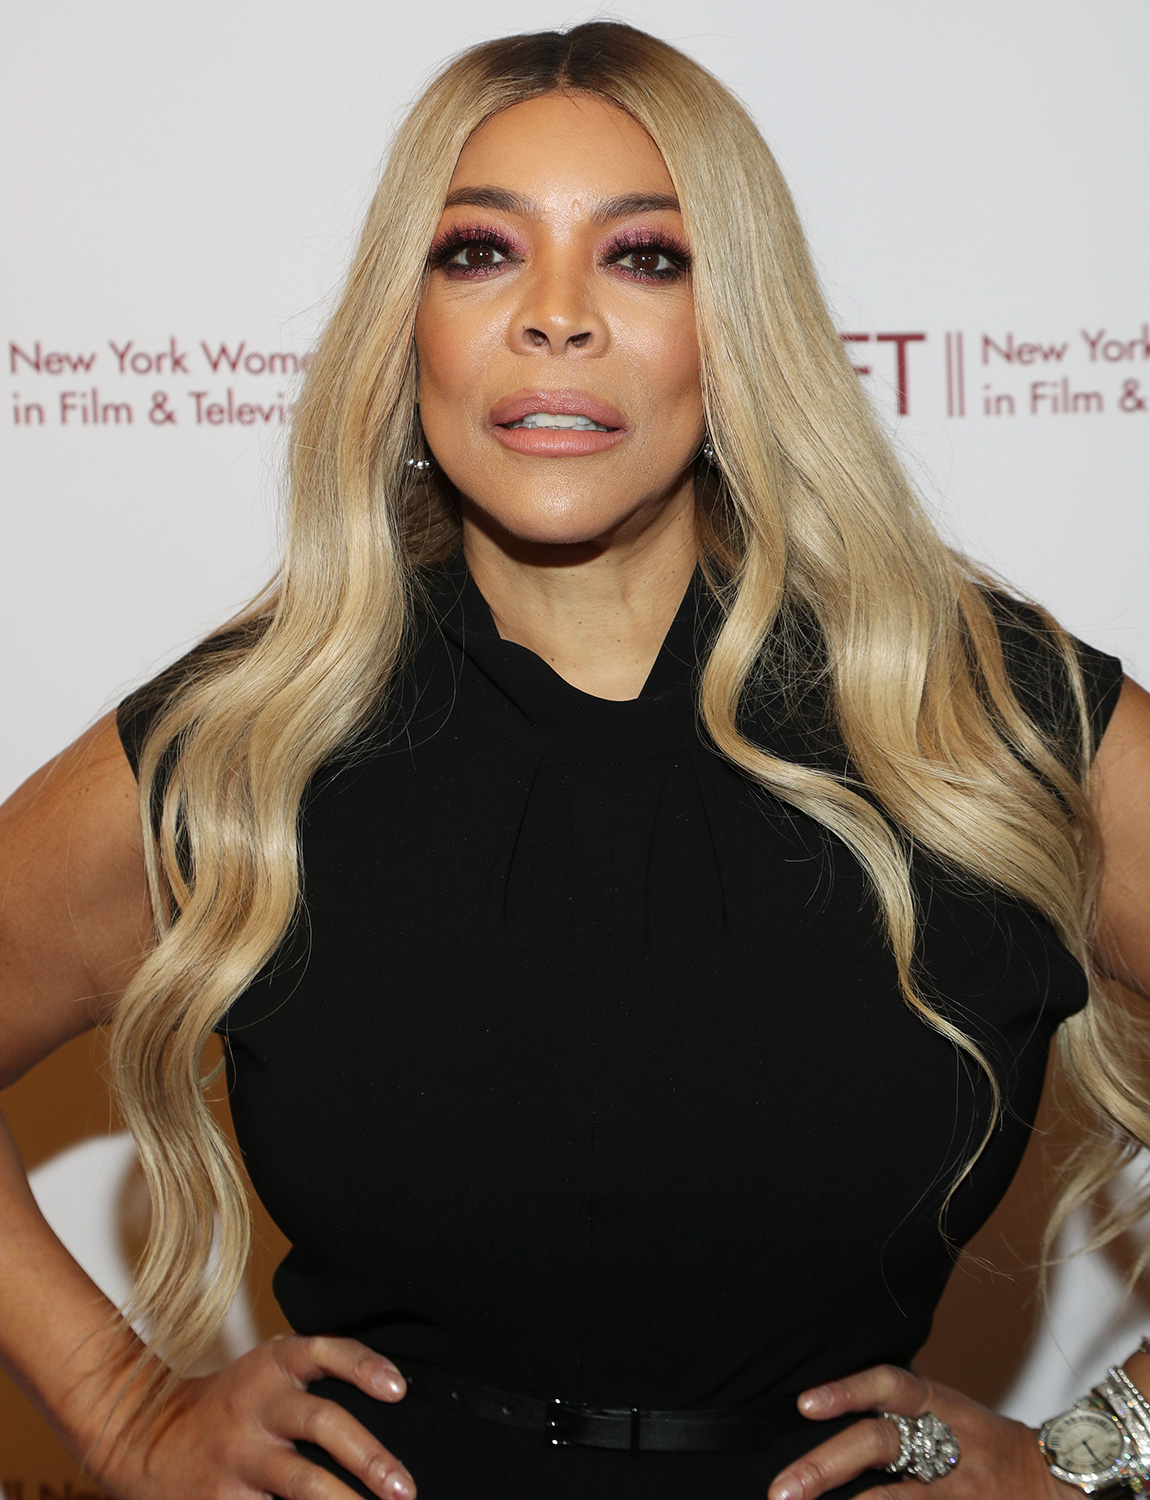 Wendy Williams: What is her net worth, personal life and career?